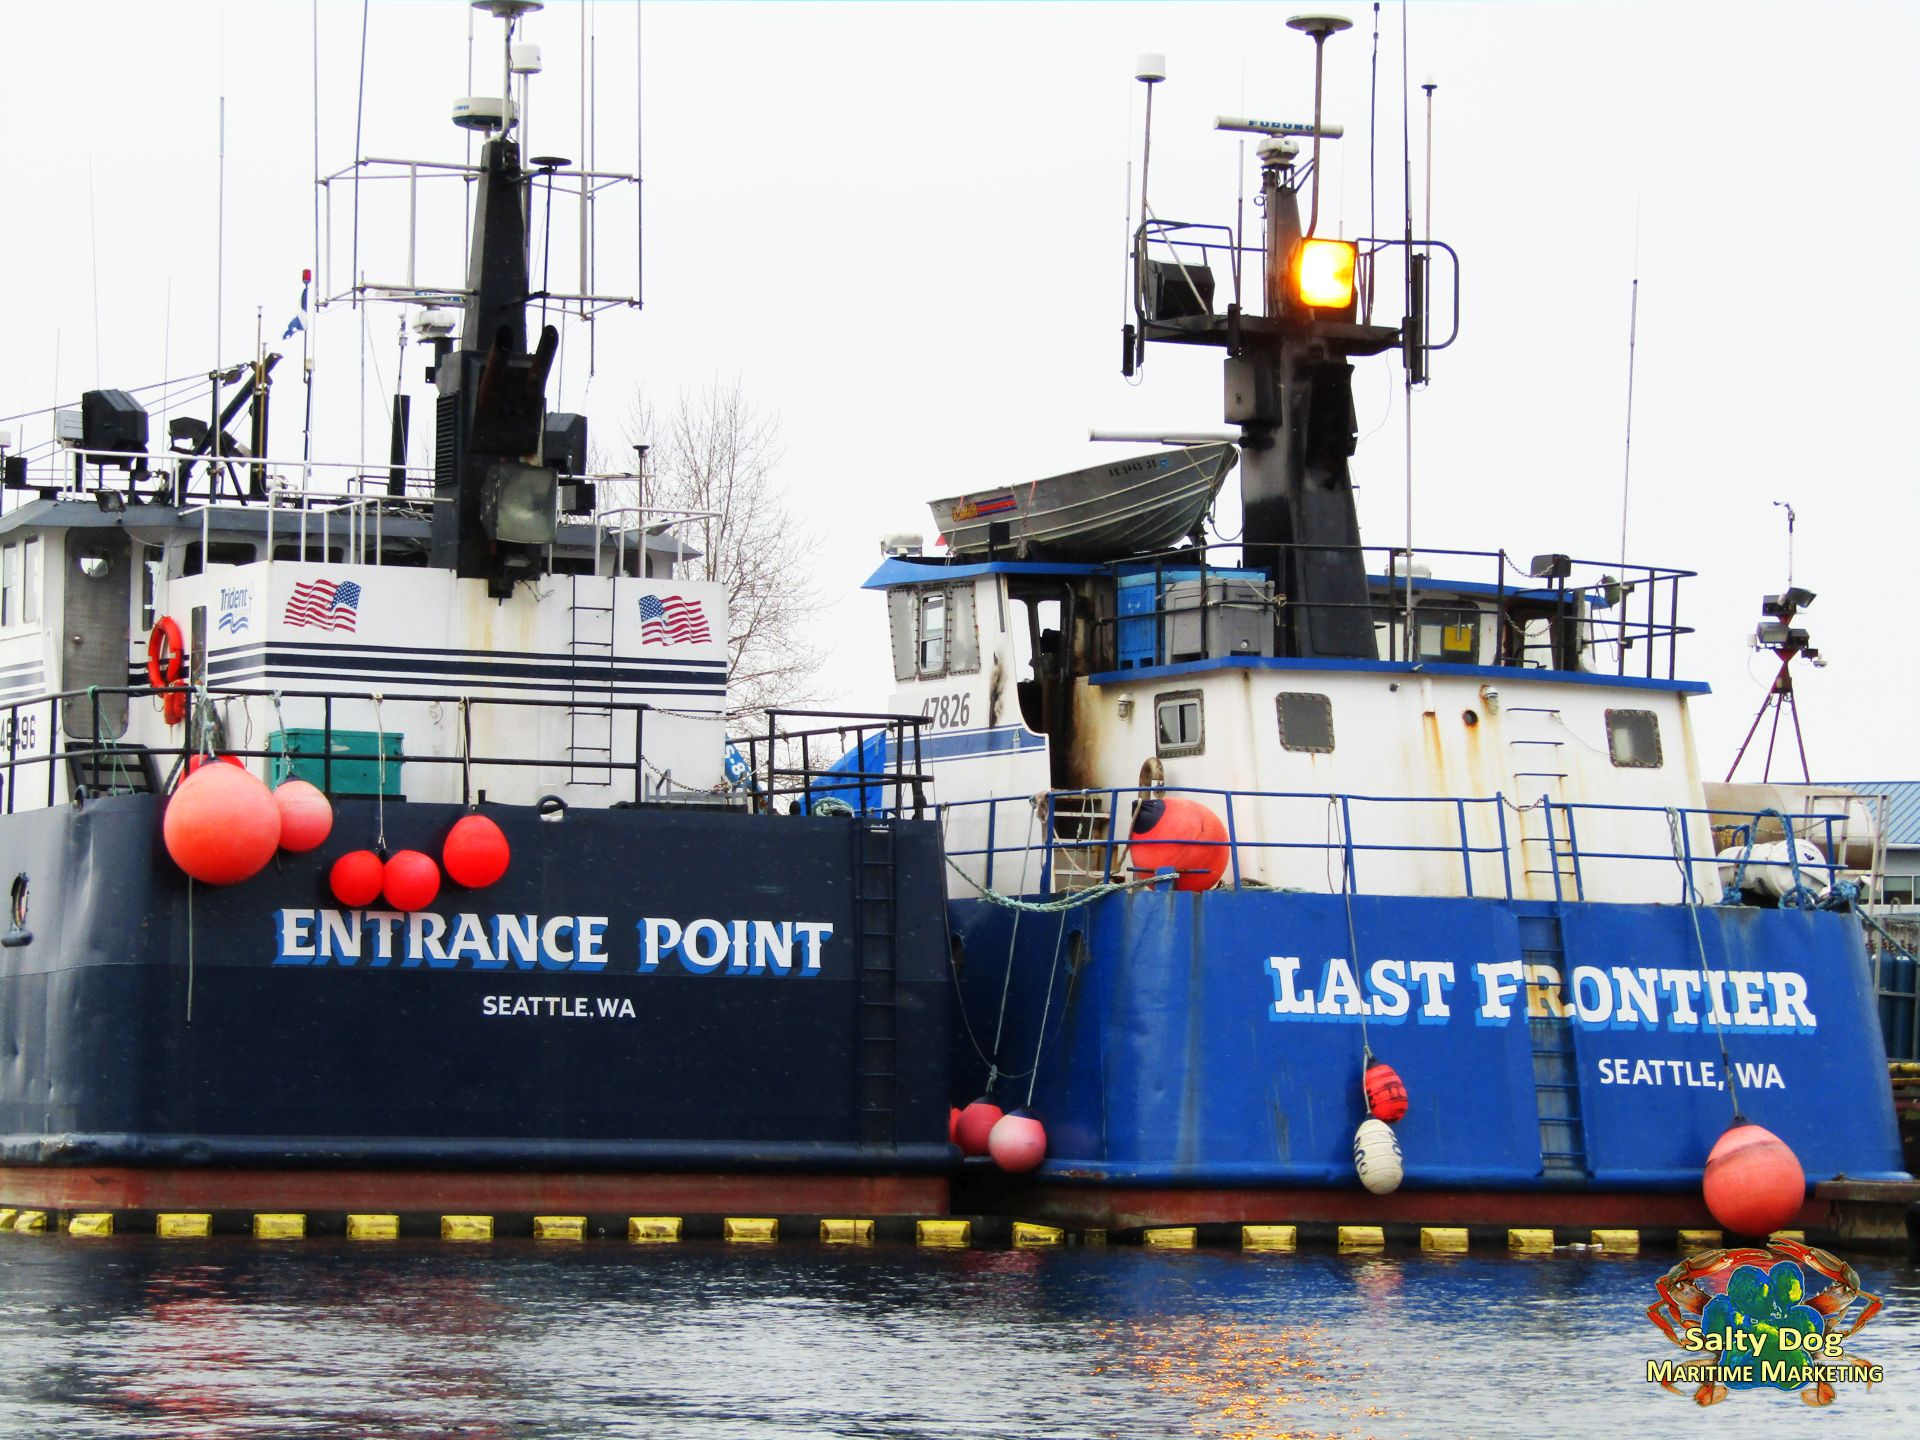 Trident Seafoods, Bulldog, Farwest Leader, Last Frontier